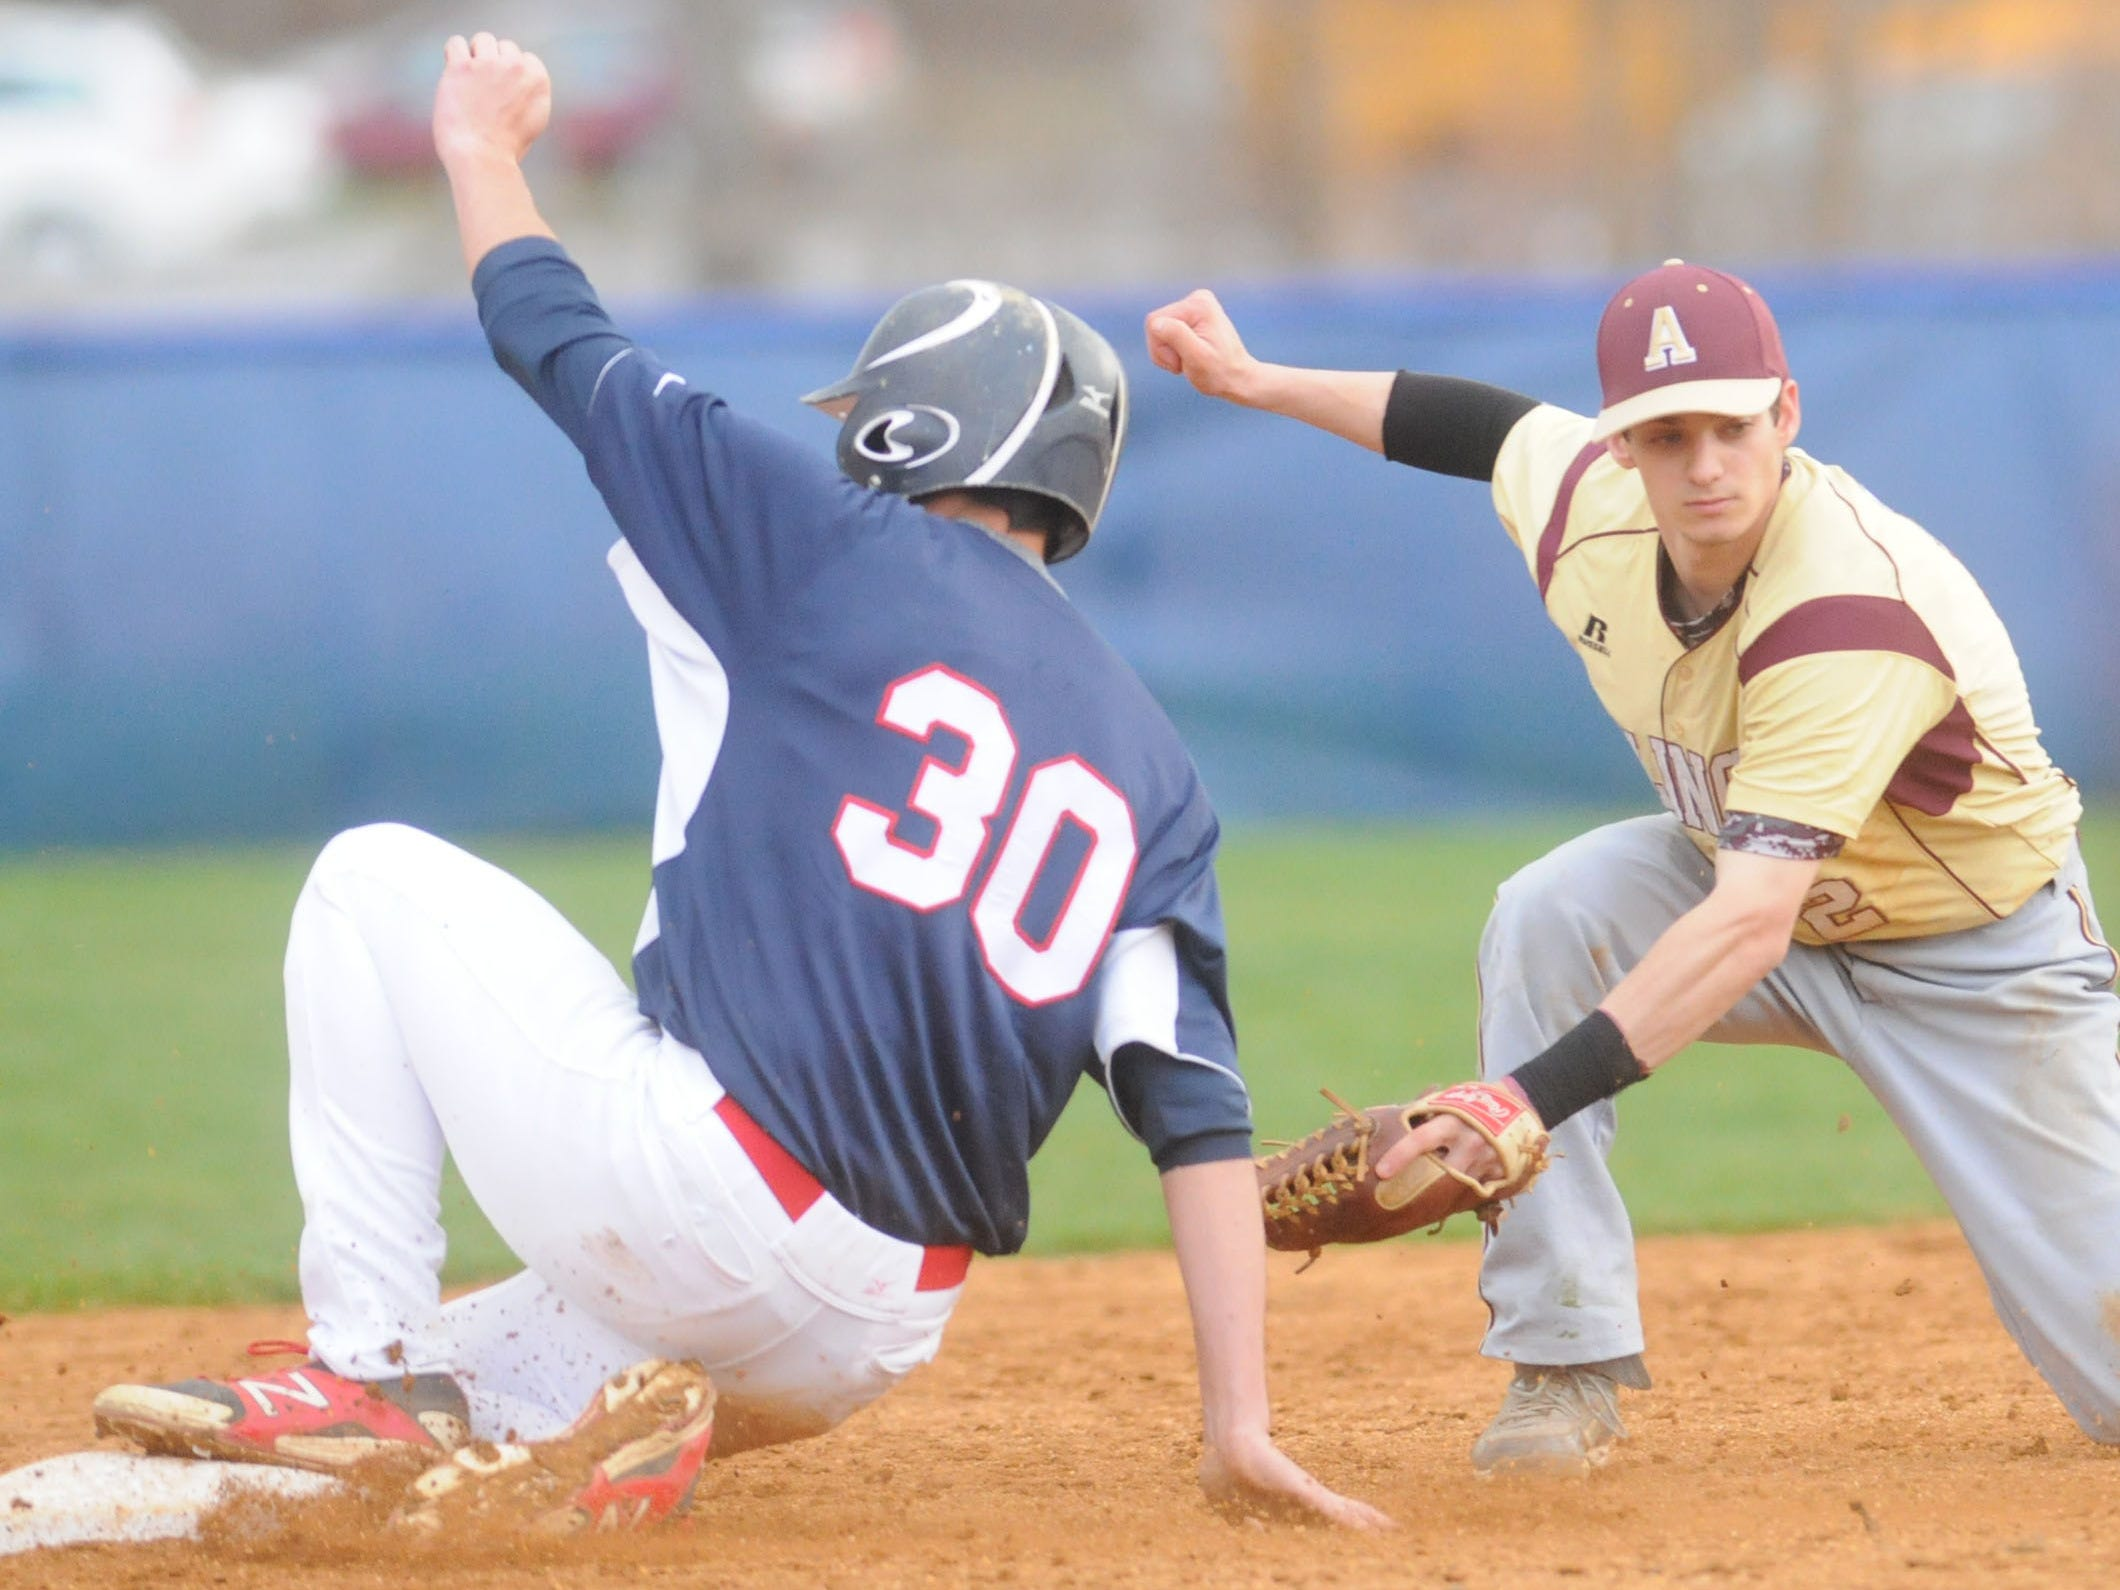 Ketcham's Brian Santiago, left, slides into second base while Arlington's Steve Gerringer, right, tries to make the tag.